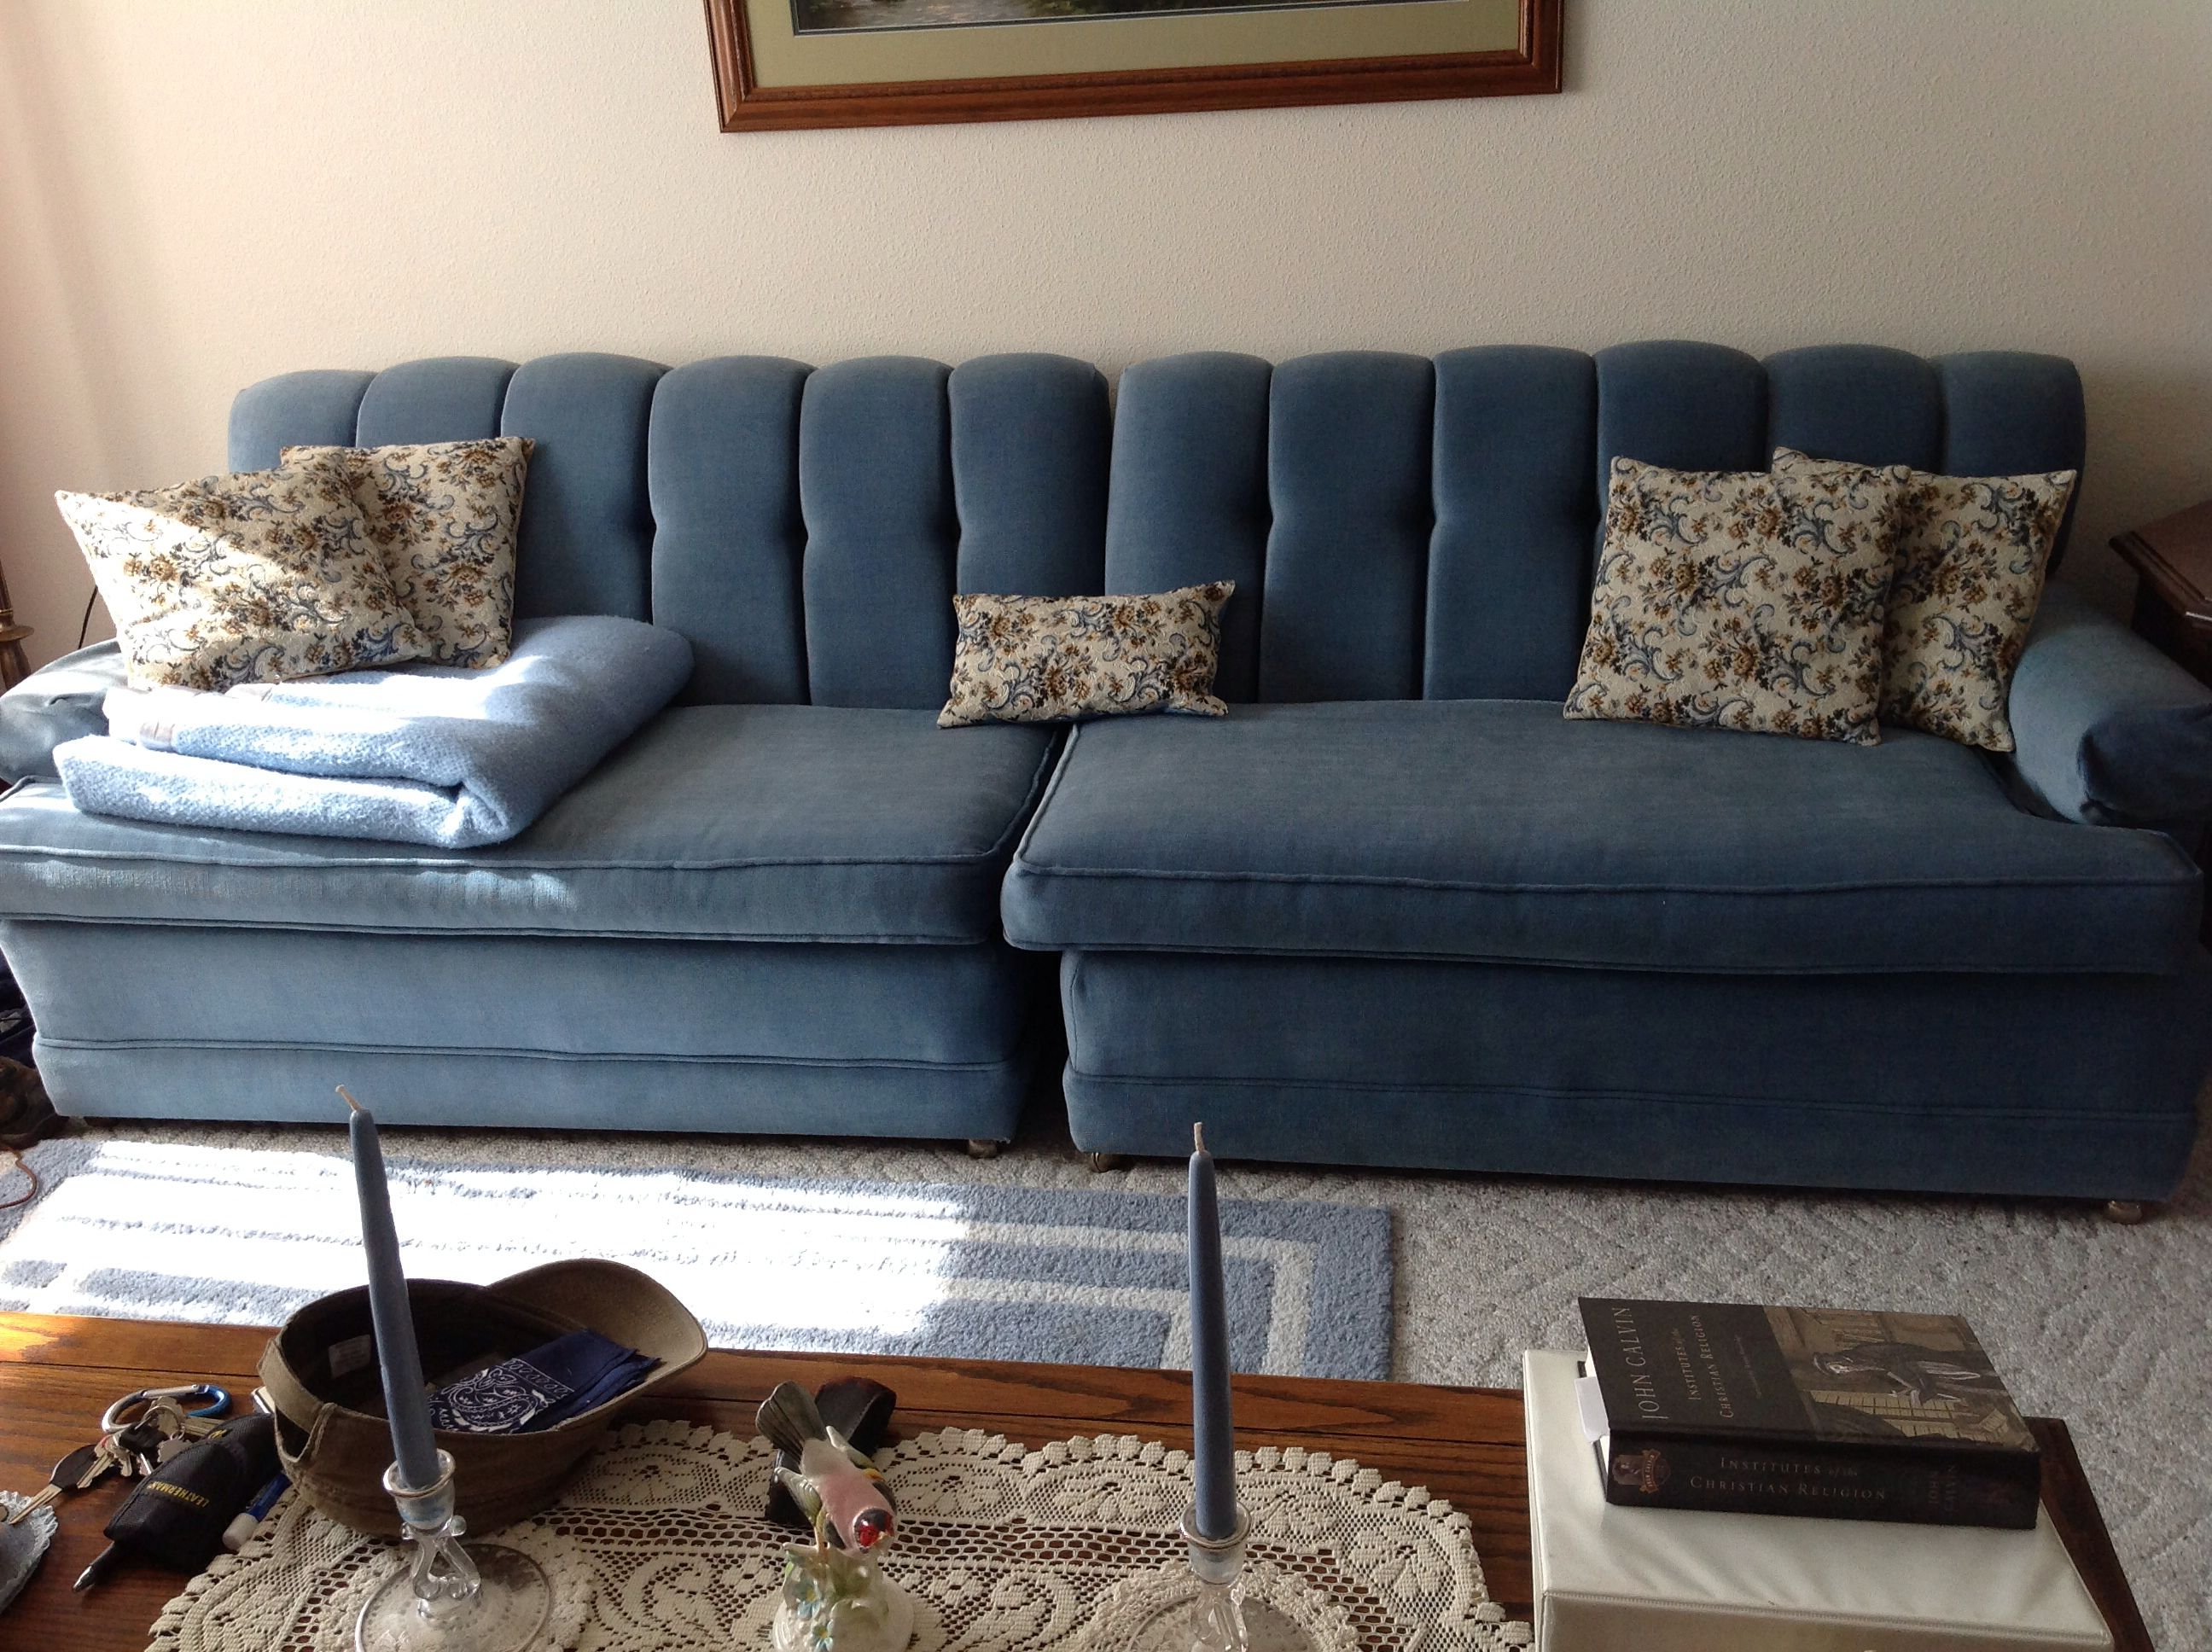 LR-36 split long sofa with throw pillows